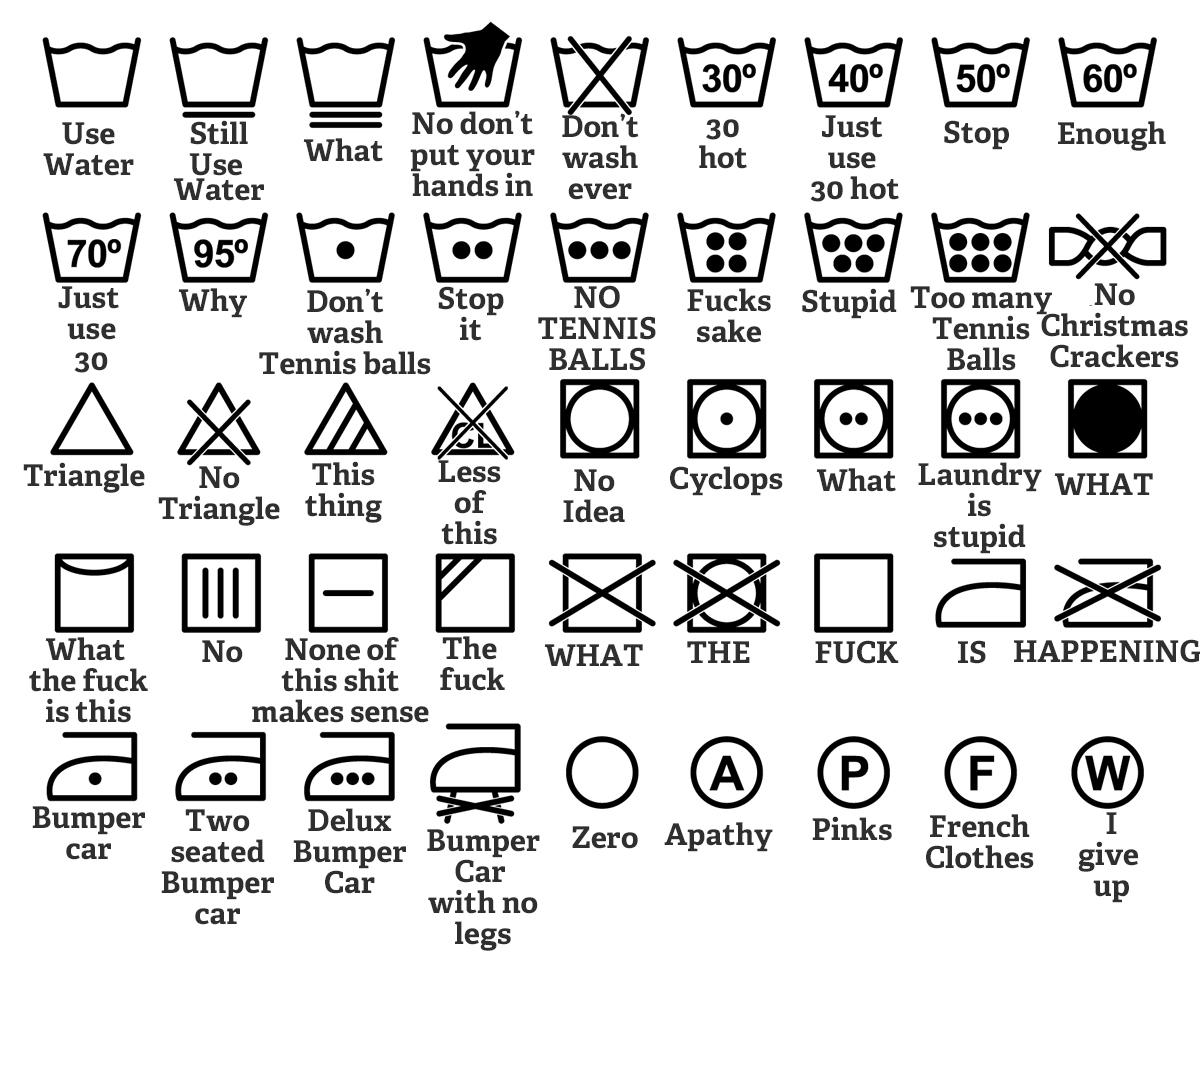 Loving this simple guide to washing machine symbols the poke technicallyron over on twitter has produced this excellent simple guide to washing machine symbols which has gone viral with over 34000 retweets and biocorpaavc Choice Image